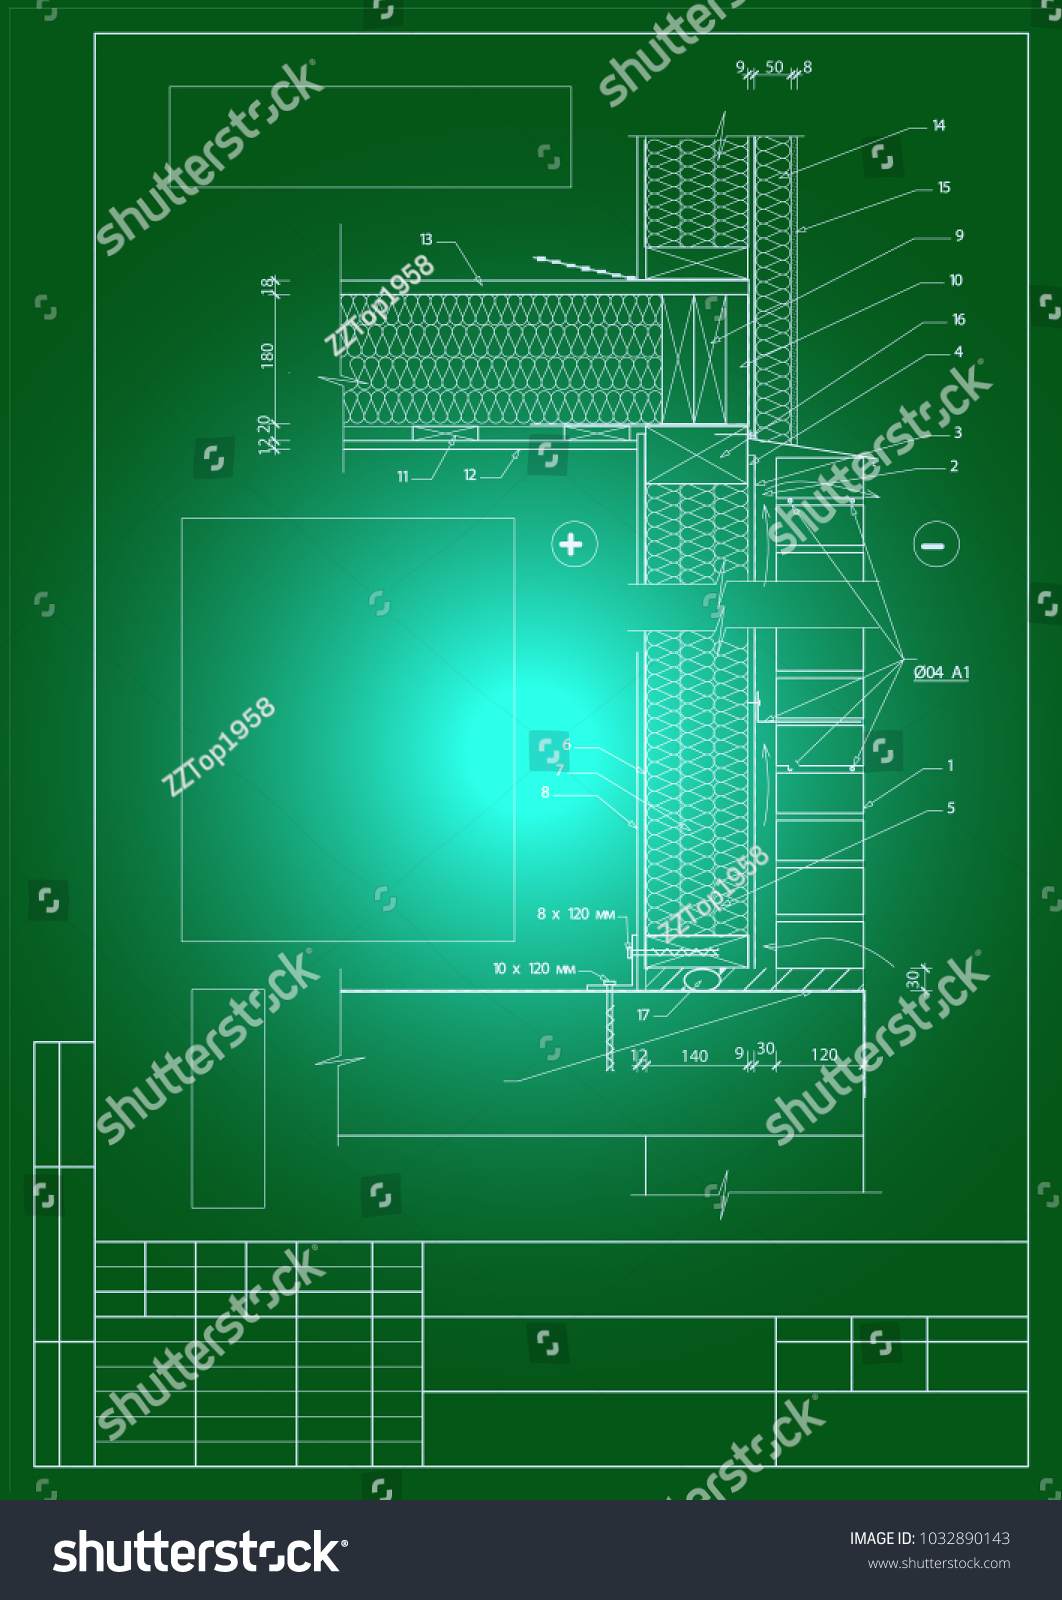 Architectural Building Structures Plans Sections Cad Stock Vector Wall Schematic Engineering Diagram And Parts Assemblies Walls